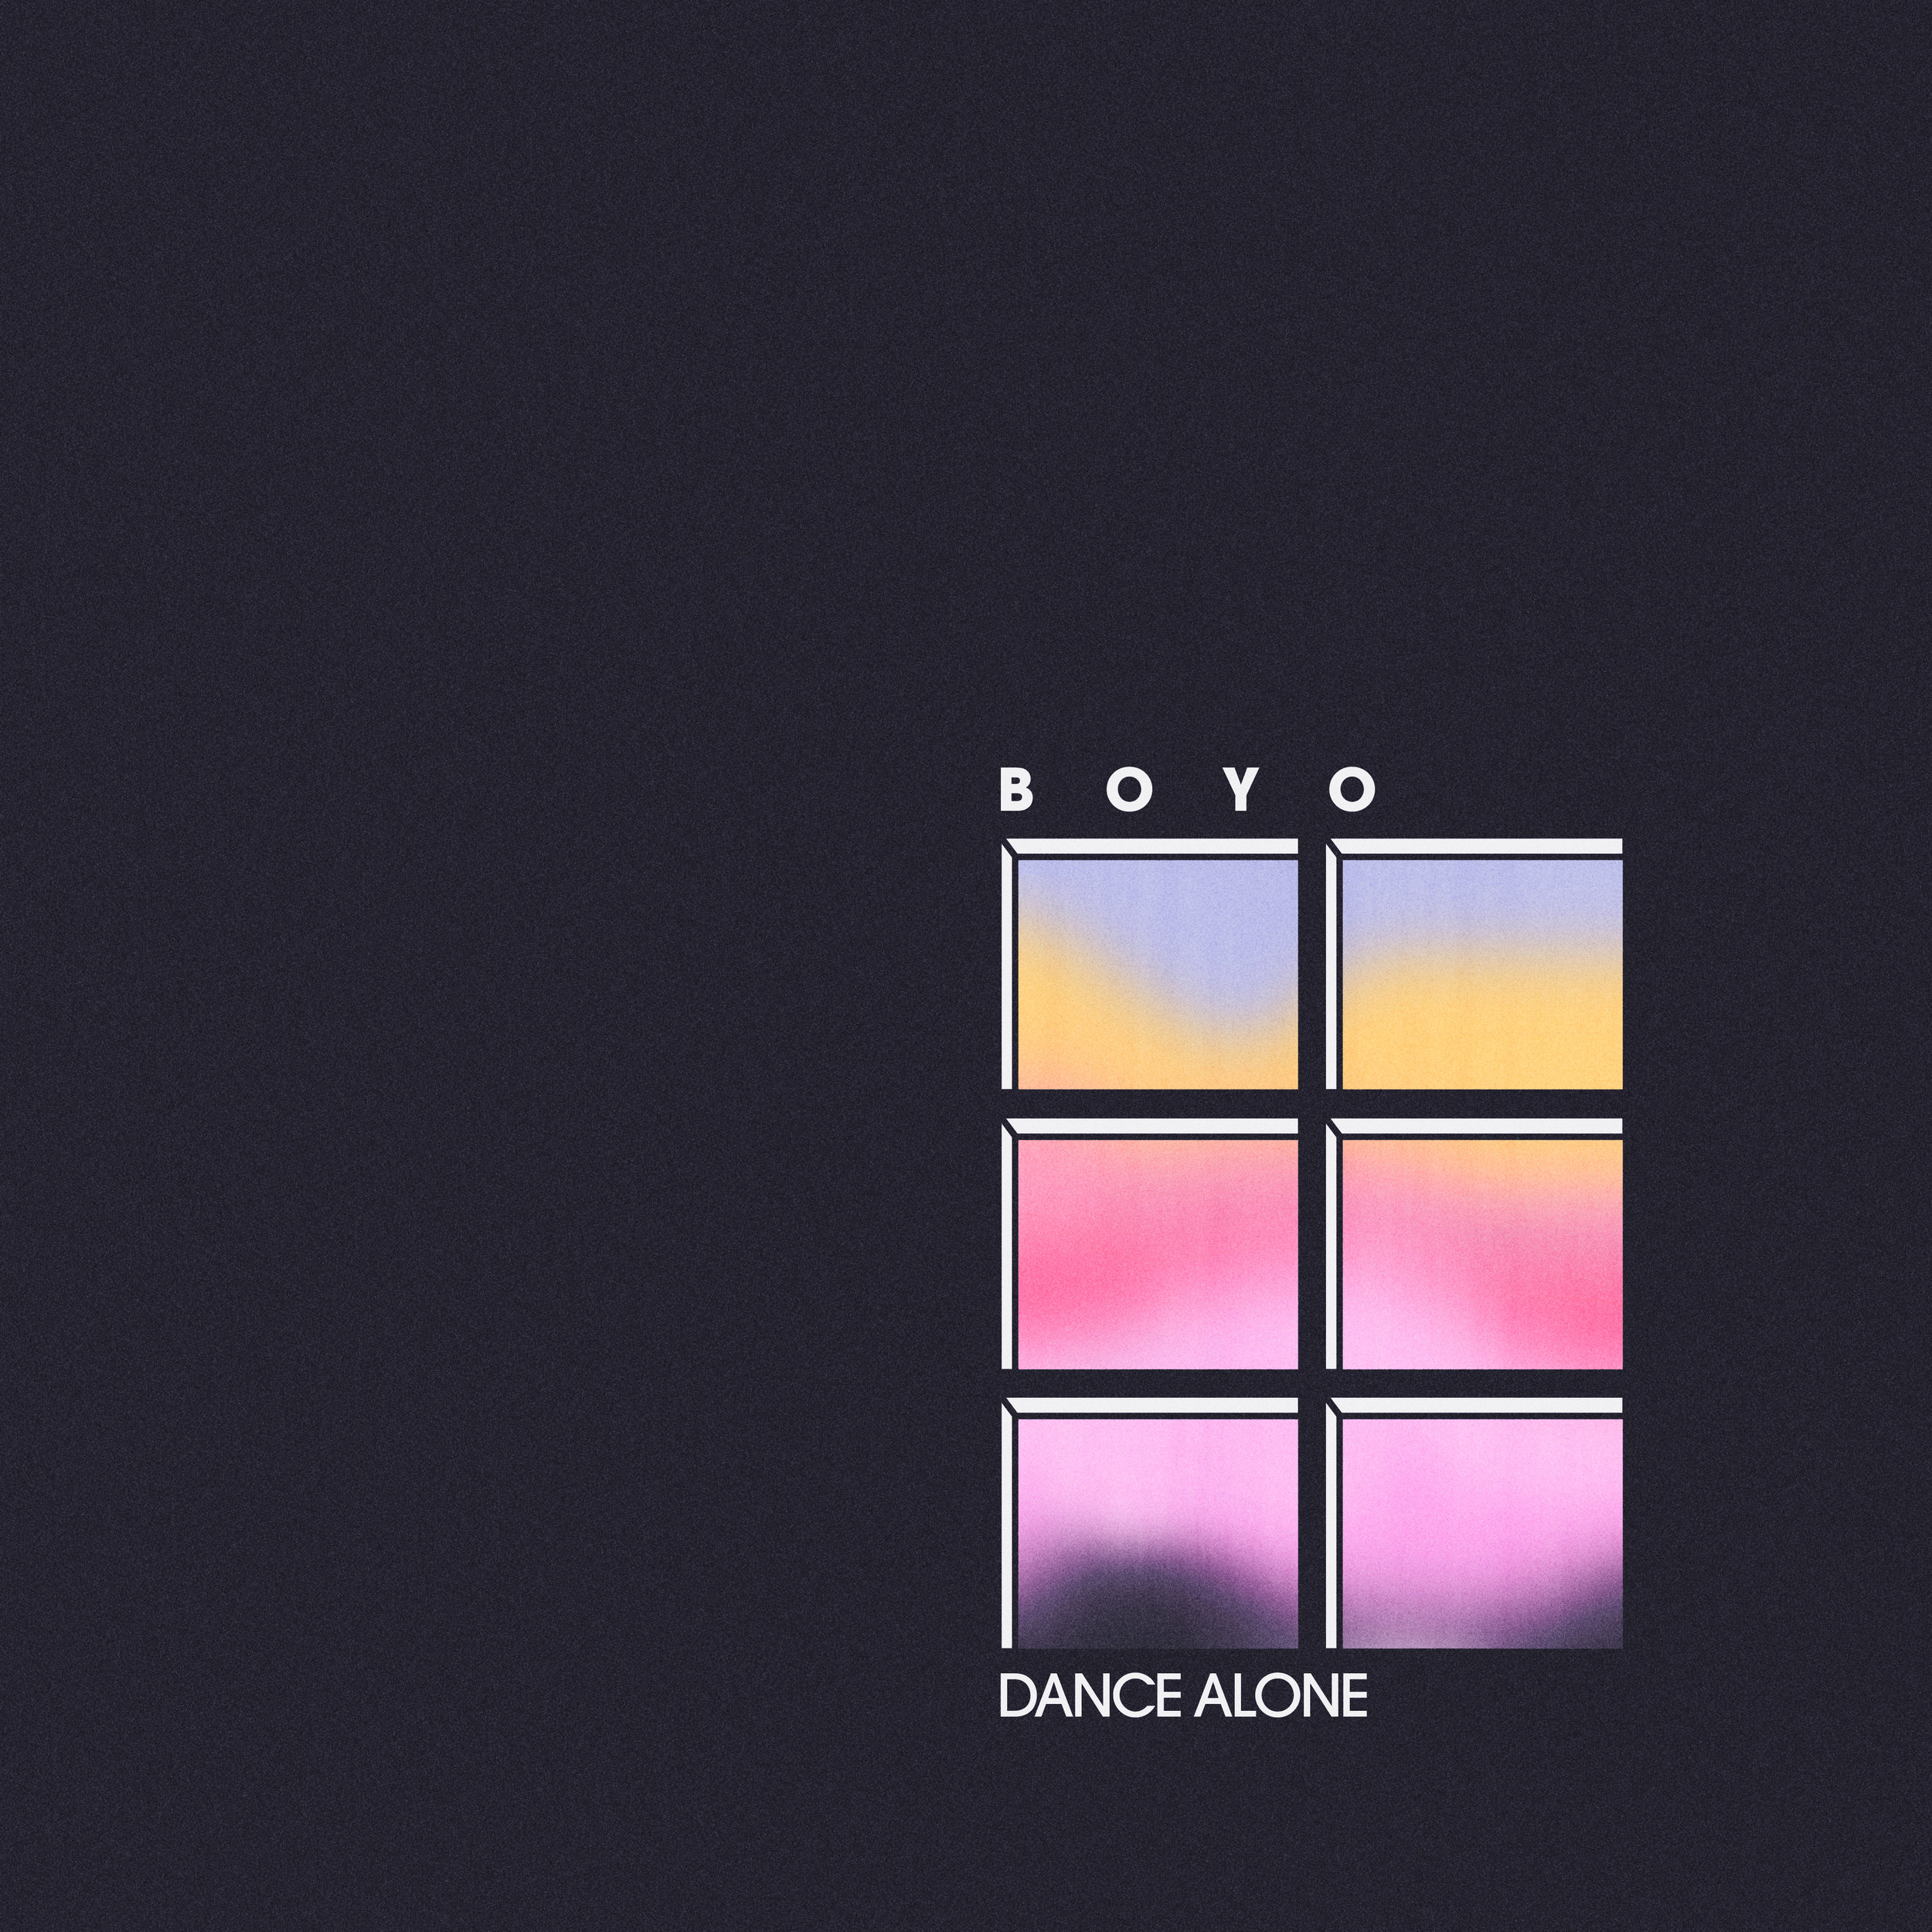 BOYO - Dance Alone